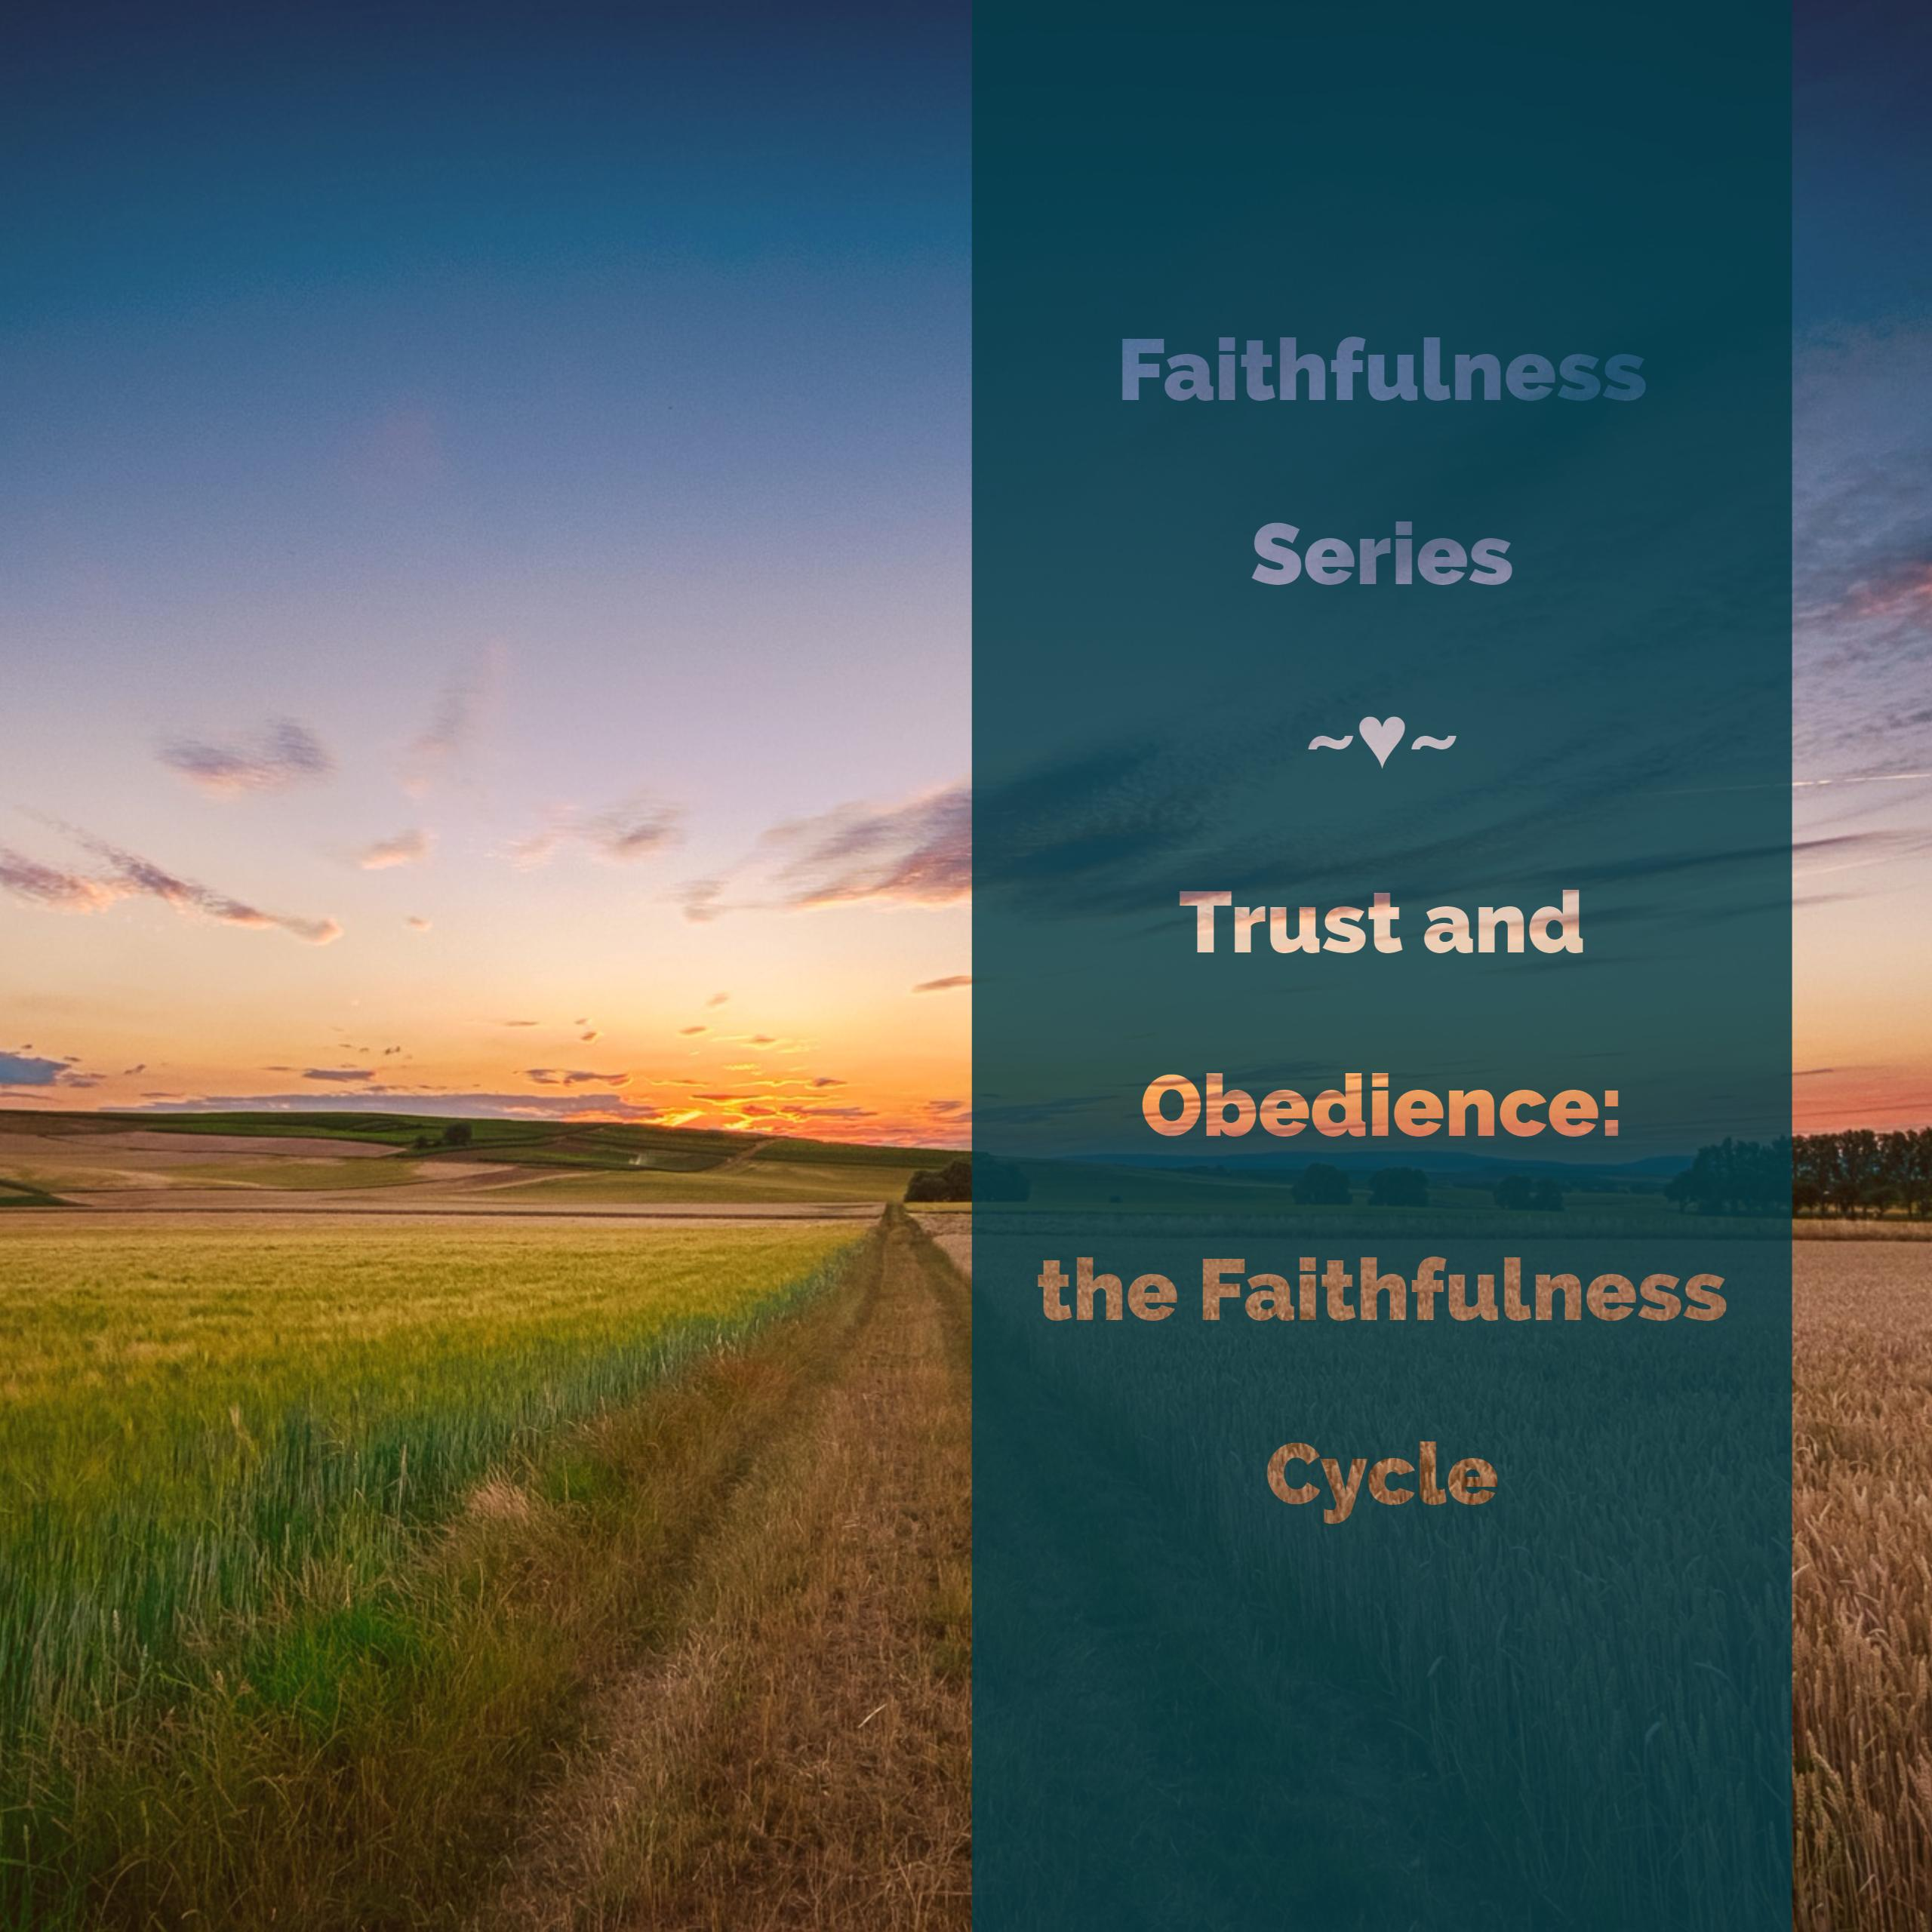 Trust and Obedience: the Faithfulness Cycle